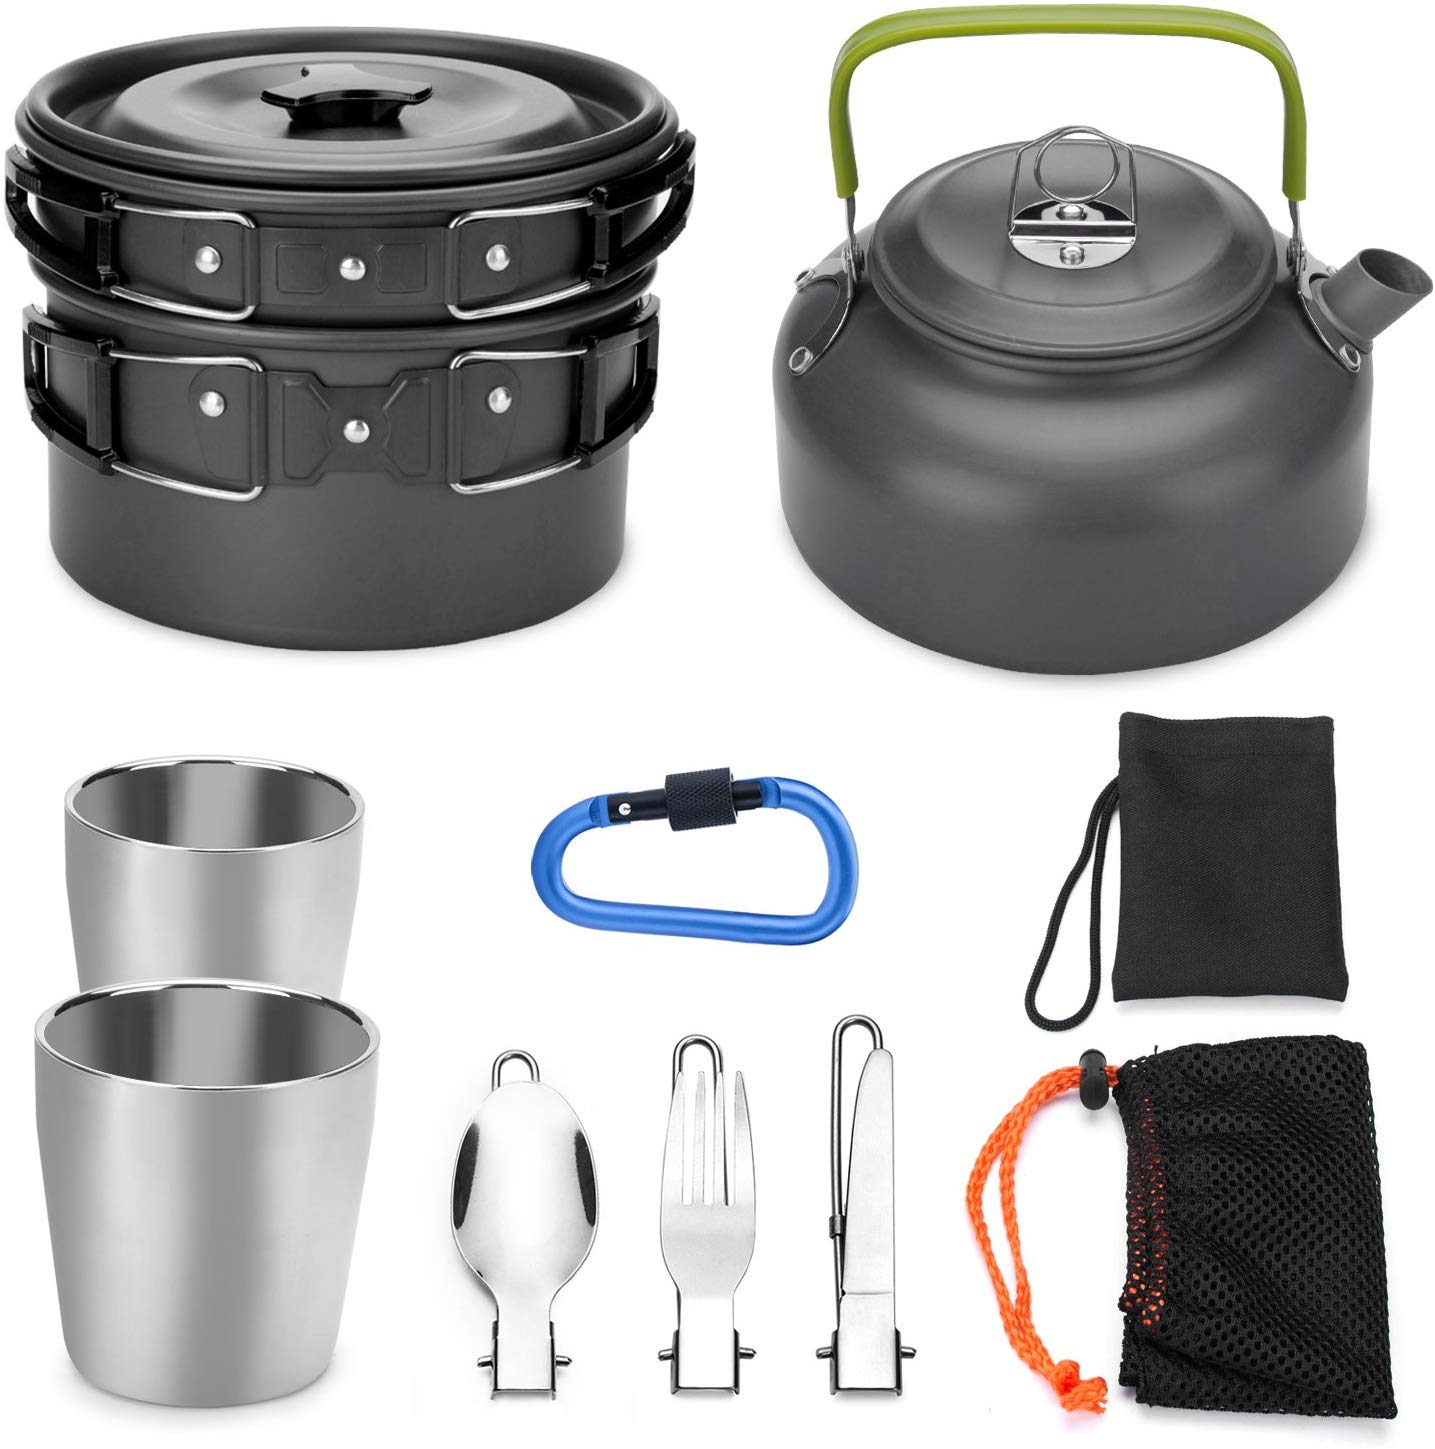 Odoland Cookware Mess Kit